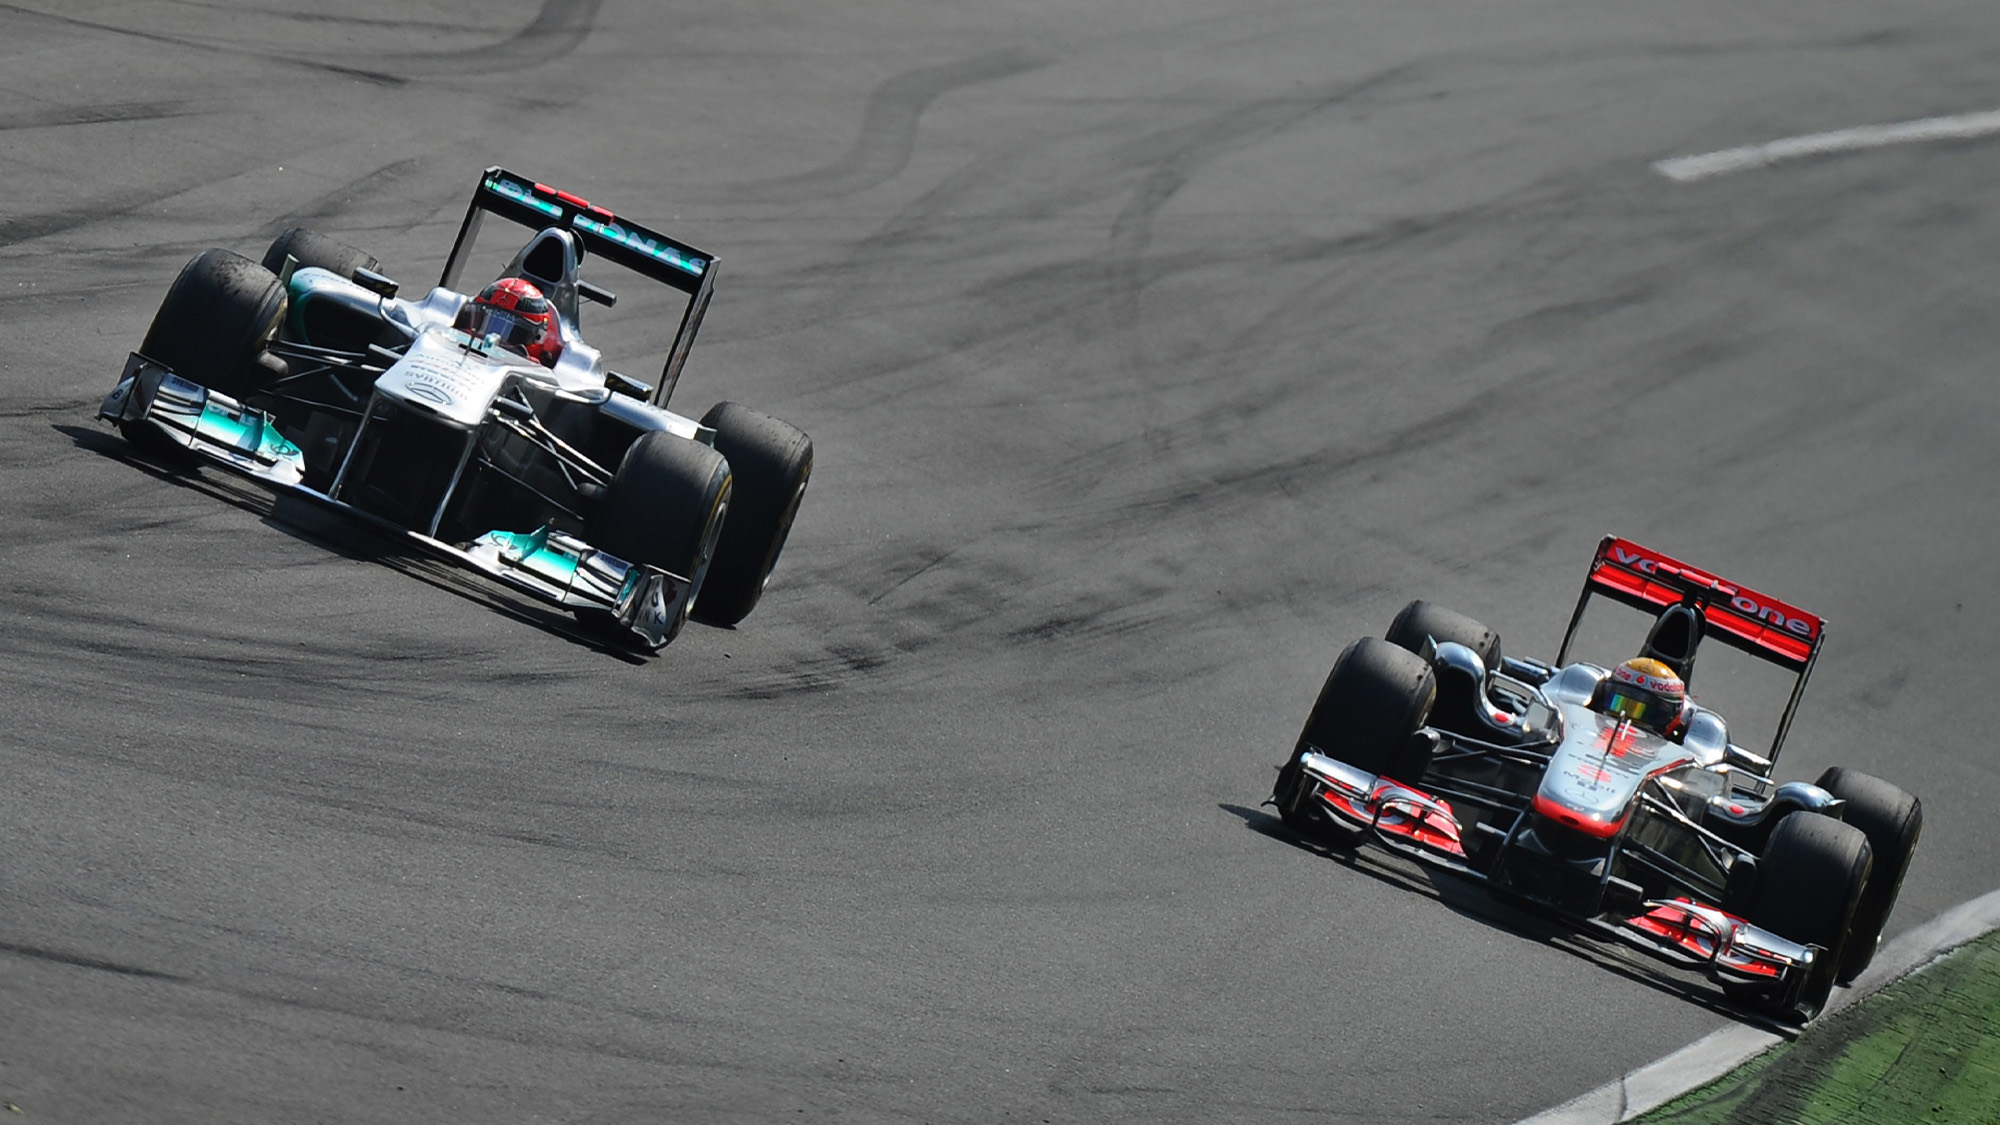 Michael Schumacher and Lewis Hamilton side by side at Monza during the 2011 Italian Grand Prix